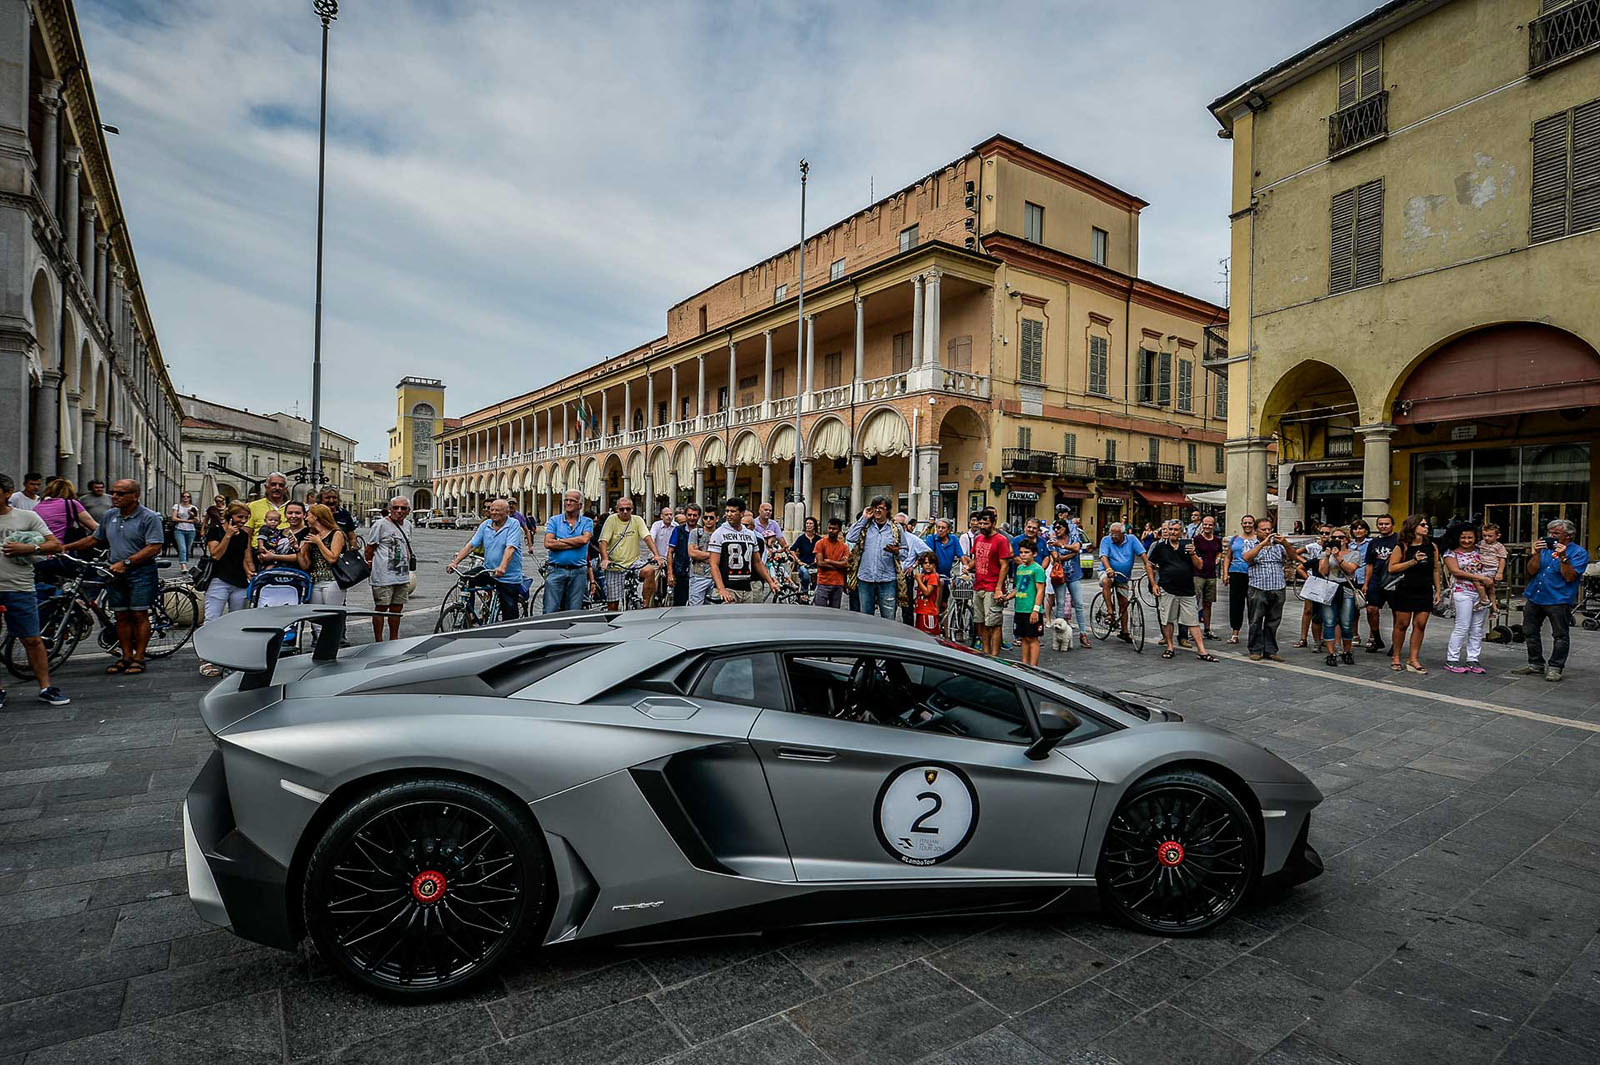 3 Days, 30 Lamborghinis and the Beauty of Italy: The Italian Tour 2016 13